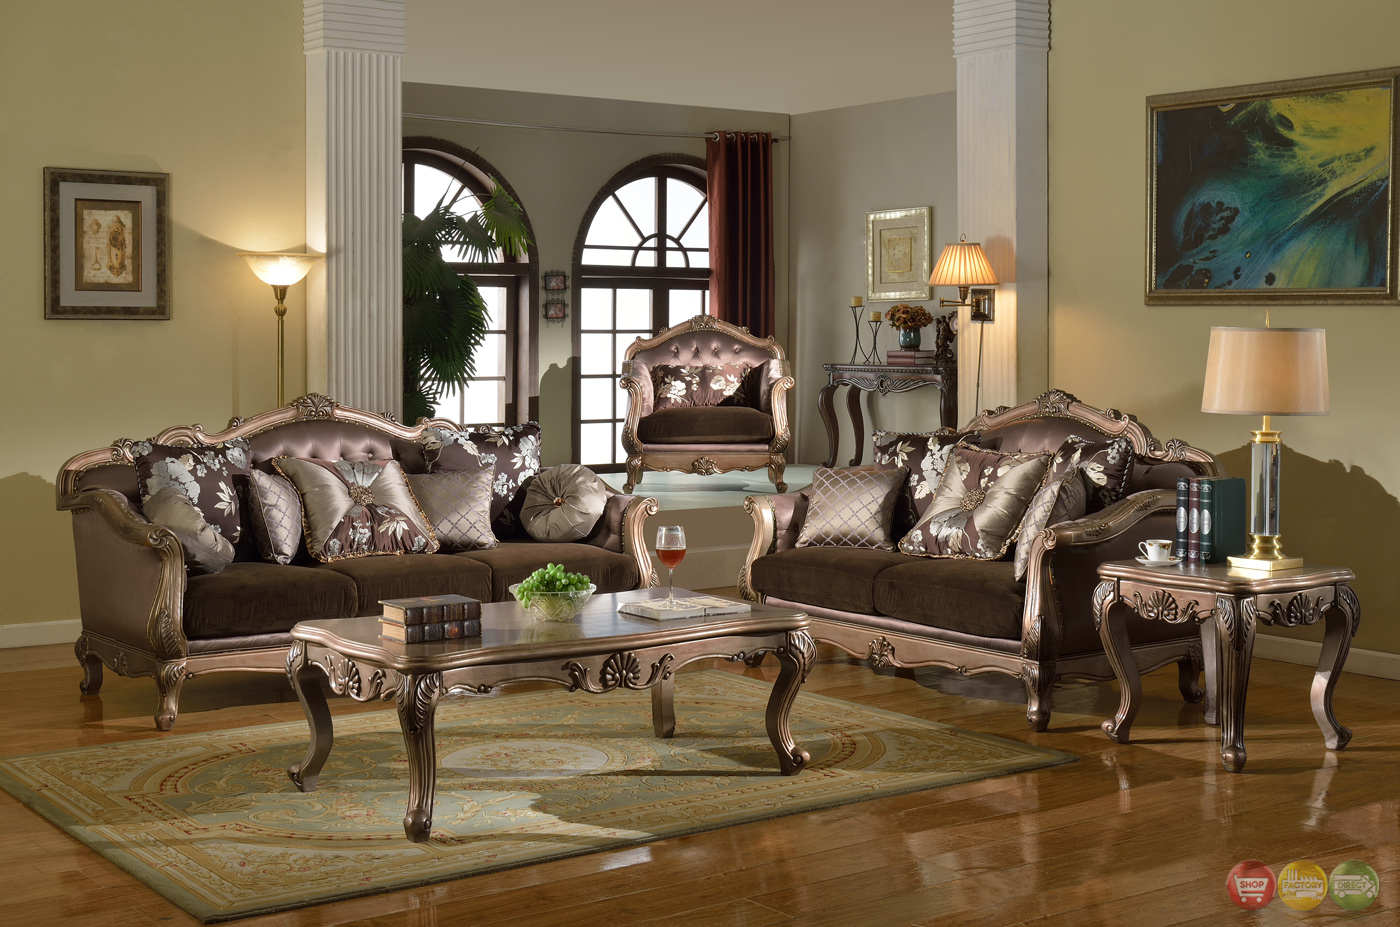 Traditional Living Room Furniture  The Best Inspiration For - Traditional style living room furniture